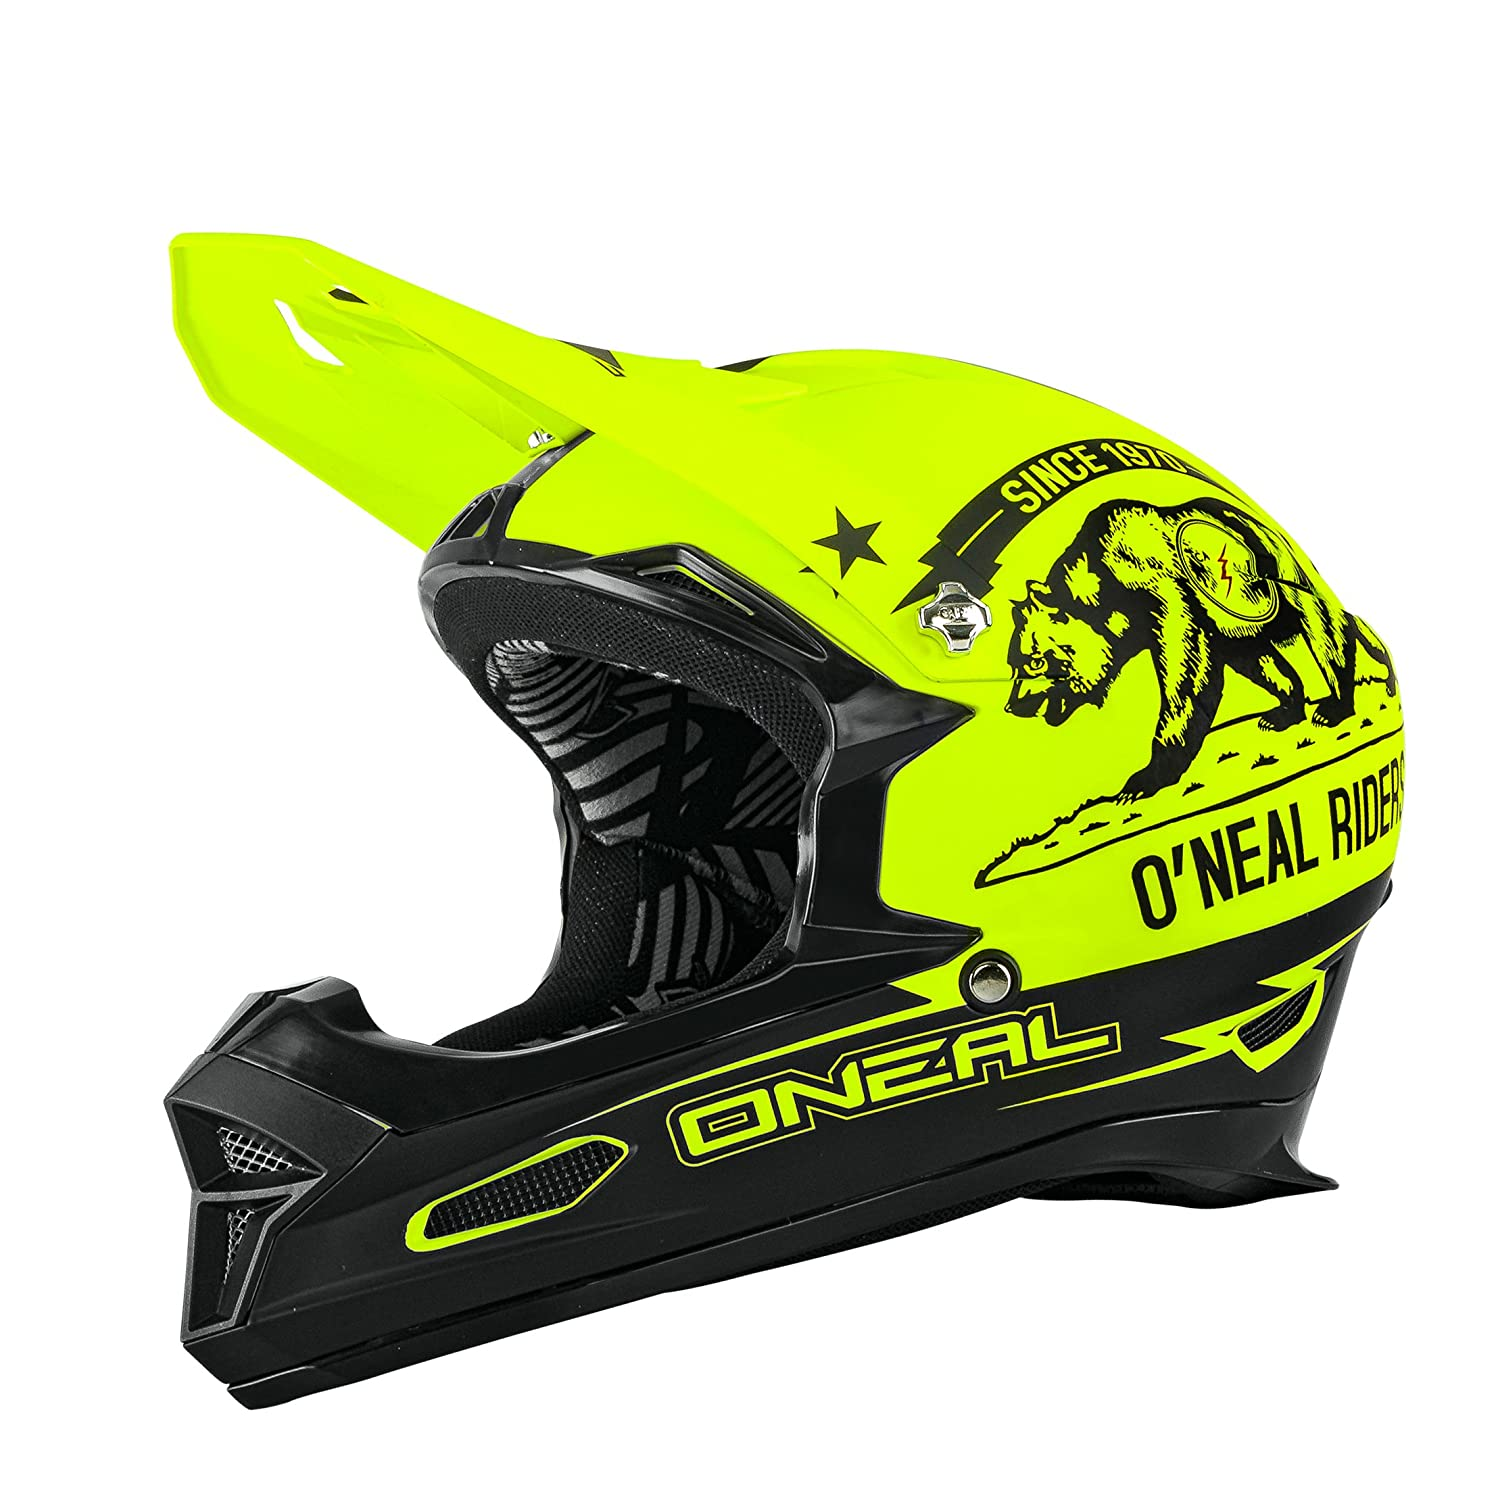 Amazon.com : Oneal Black-Neon Yellow 2016 Fury Fidlock DH RL California MTB Full Face Helmet : Sports & Outdoors